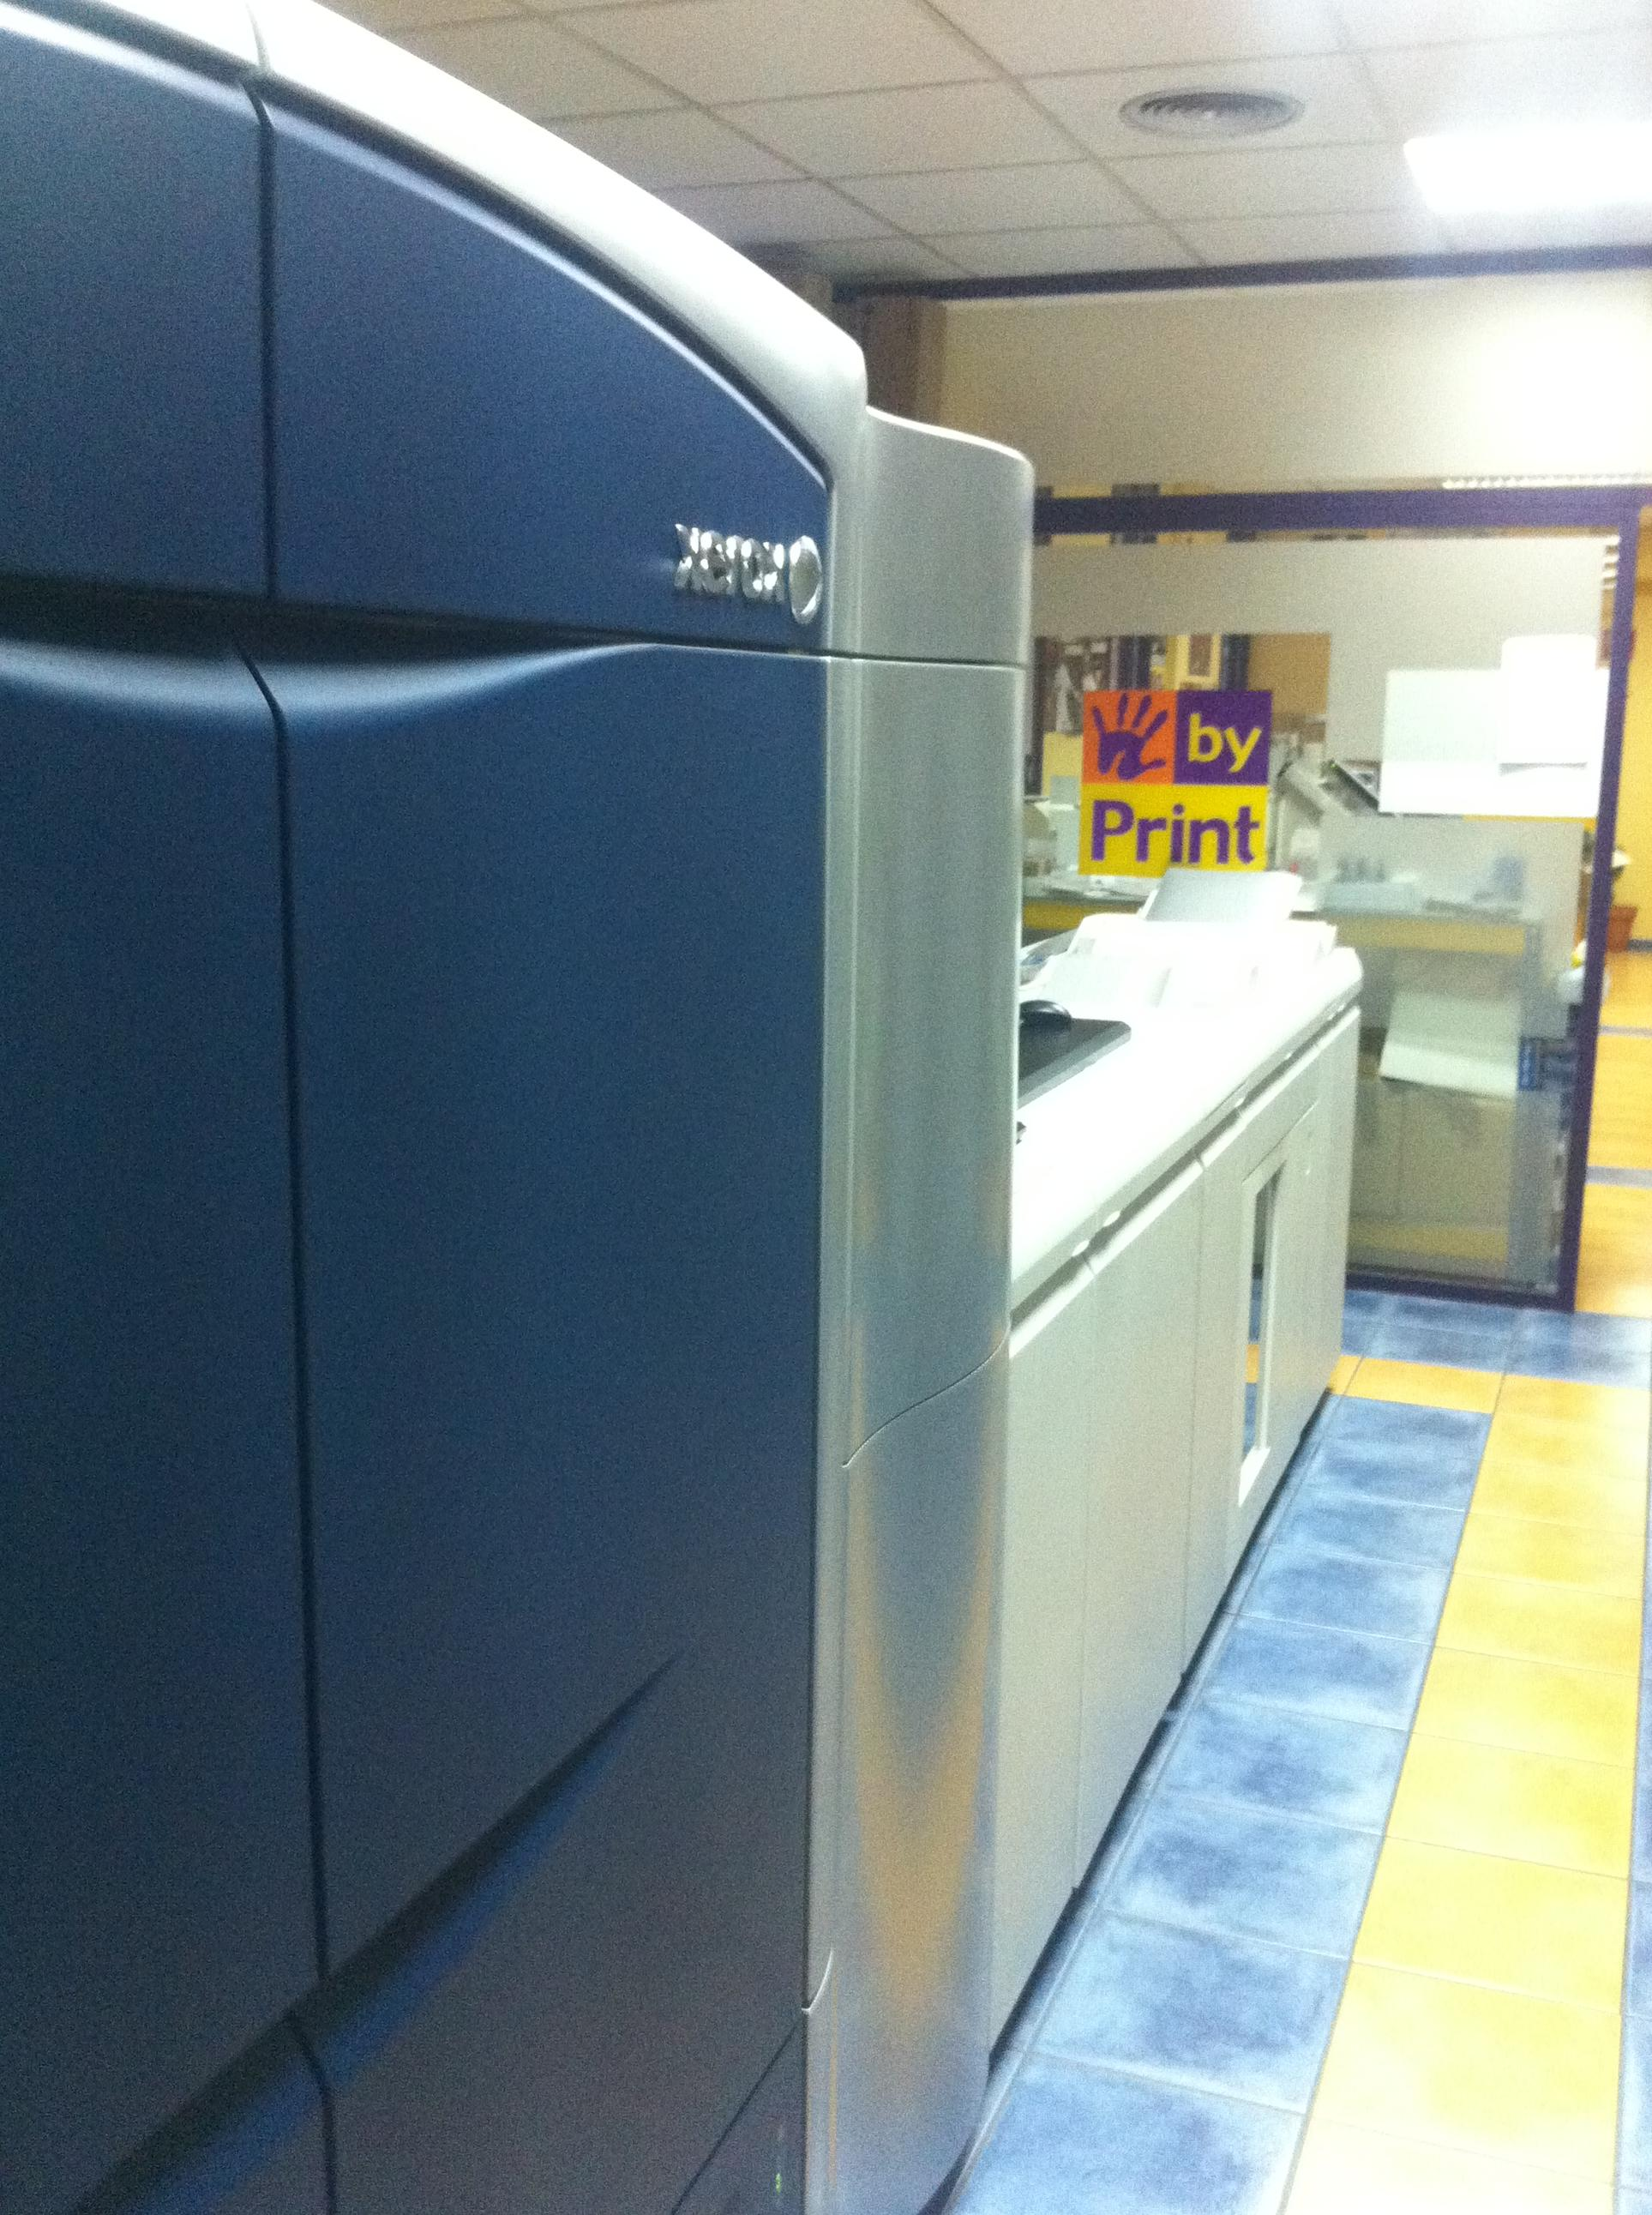 xerox 1000 \u002D imprenta alta resolución \u002D byPrint Madrid